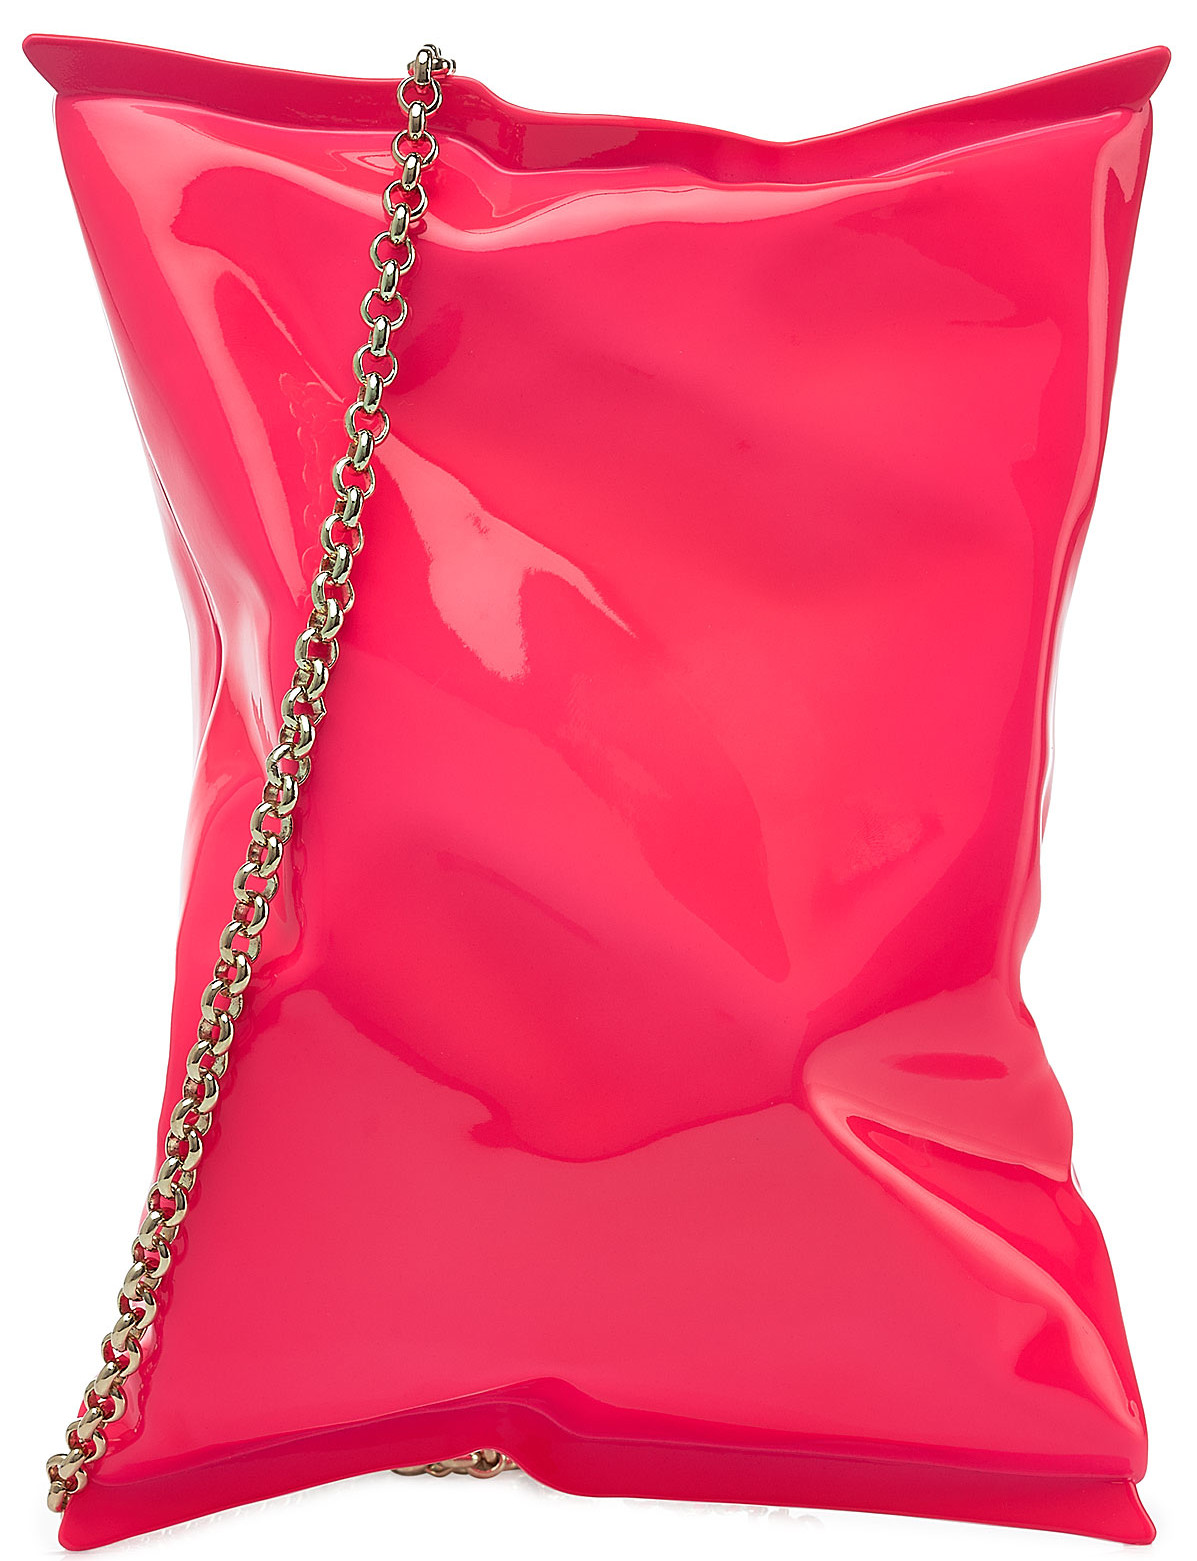 Anya Hindmarch crisp packet clutch hot pink